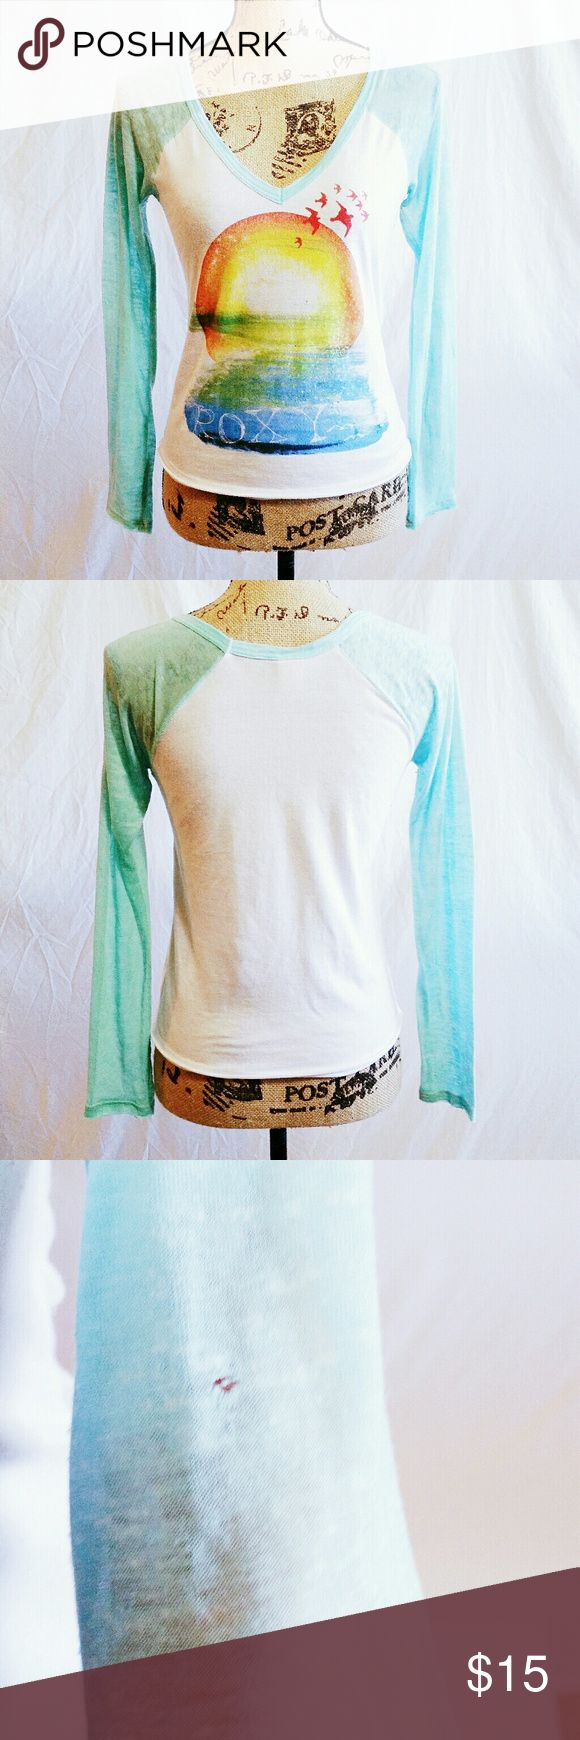 Sheer Roxy Long Sleeve Baseball Top - Size M *Reasonable offers accepted!* Tropical themed Roxy longs sleeve baseball top with blue sleeves. Size Medium. One small hole in left sleeve, but otherwise excellent used condition. Roxy Tops Tees - Long Sleeve